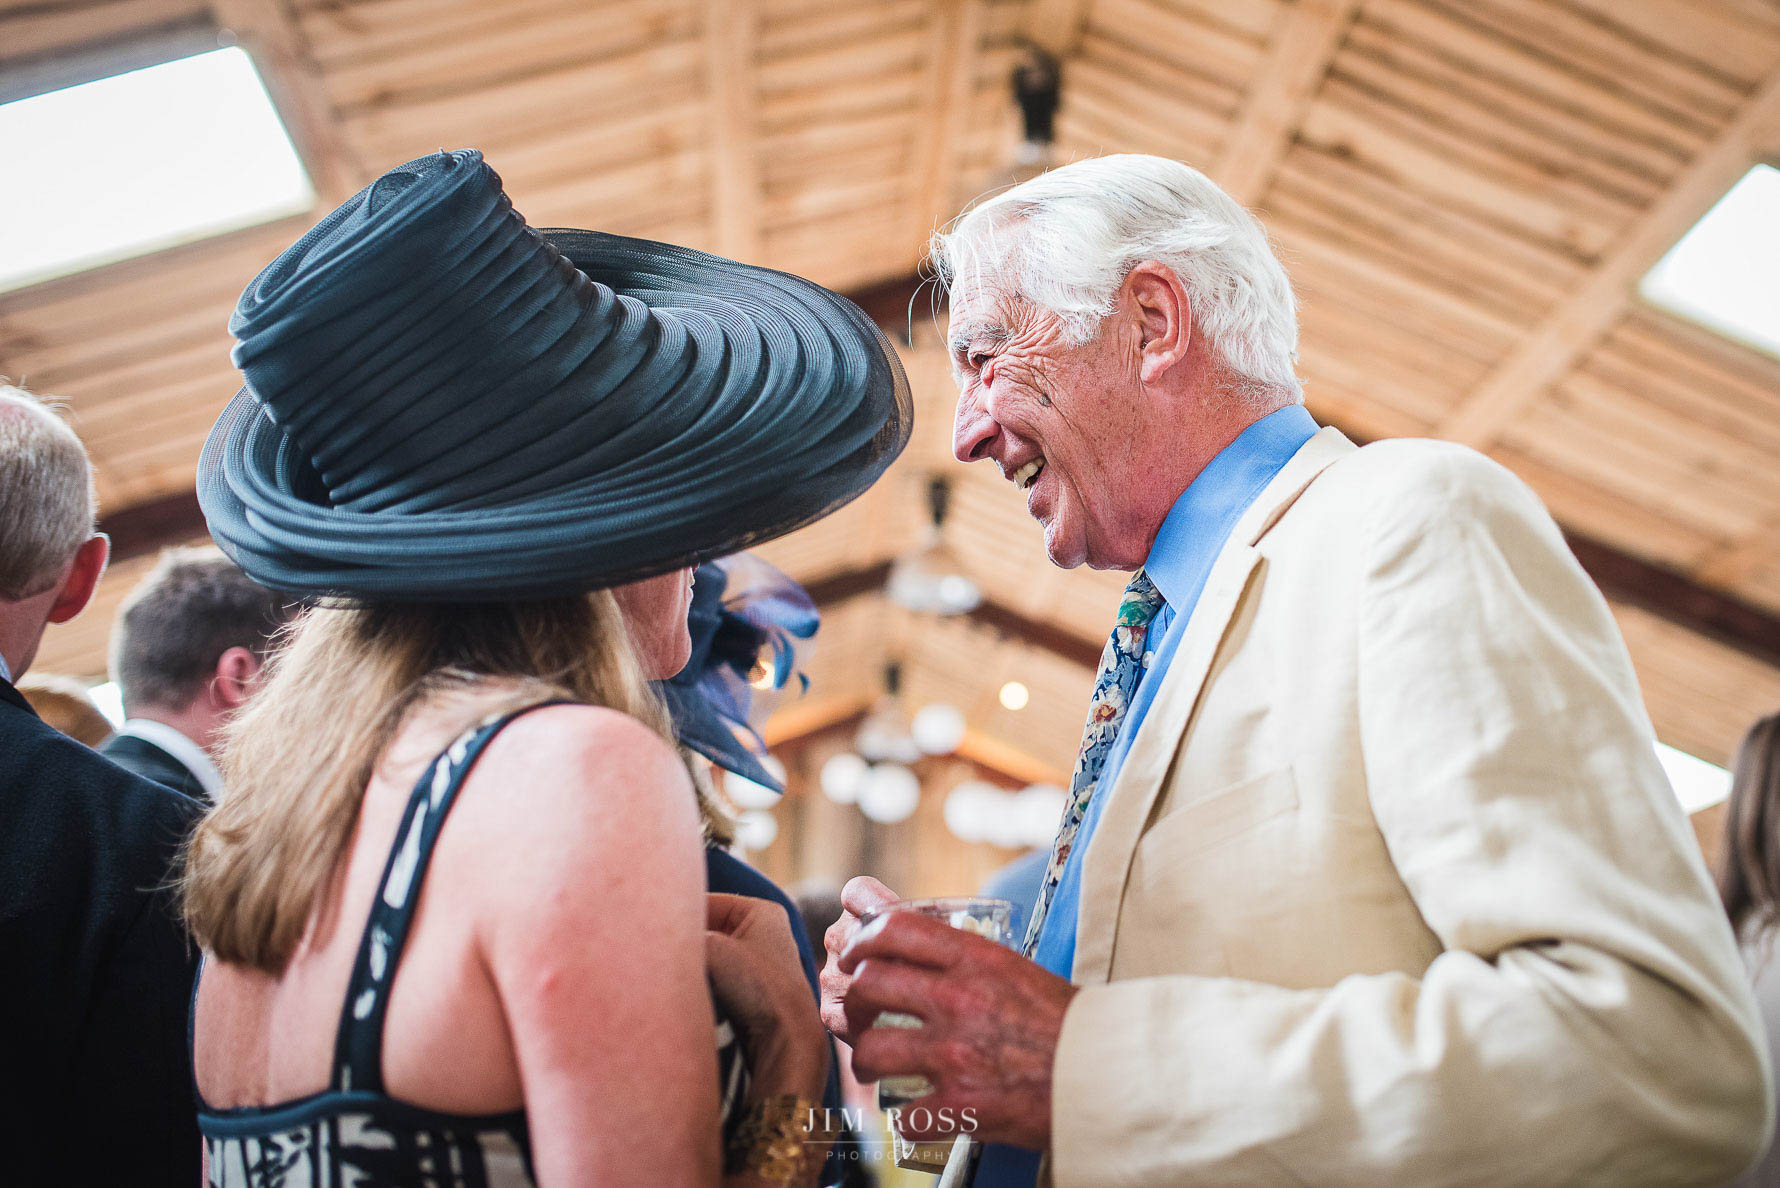 Hats and laughs in wedding barn